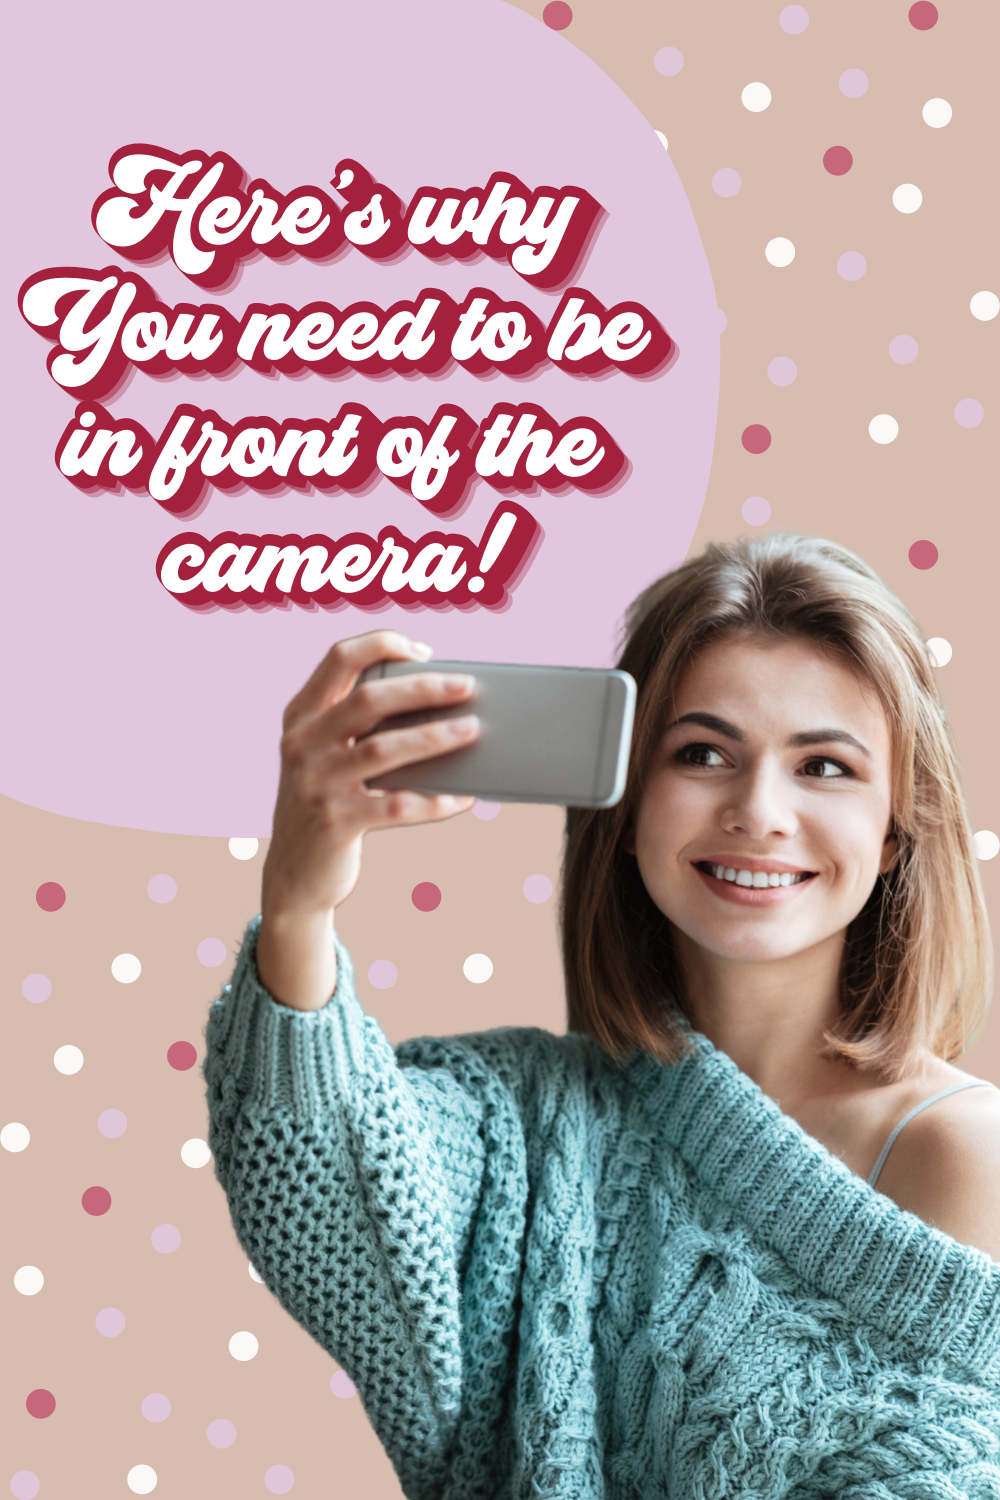 Why you need to be in front of the camera